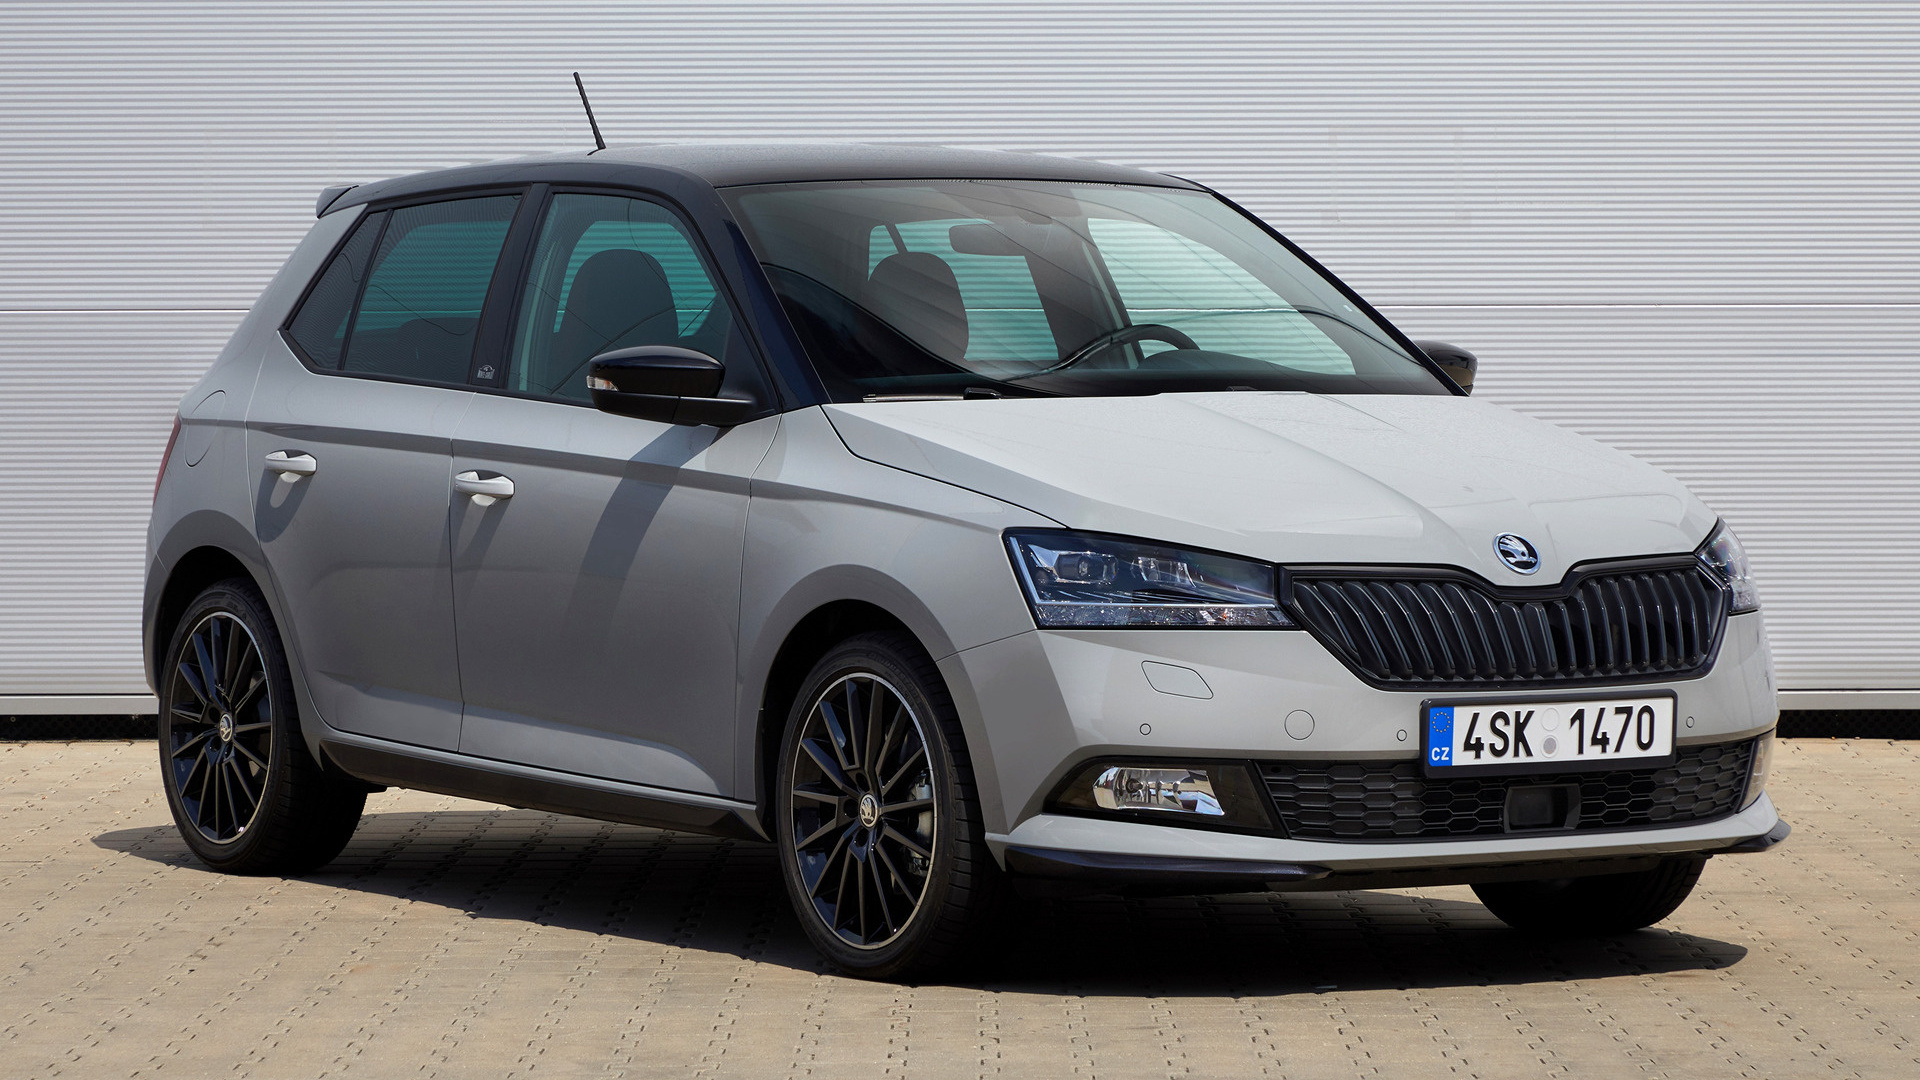 2018 Skoda Fabia Monte Carlo - Wallpapers and HD Images ...